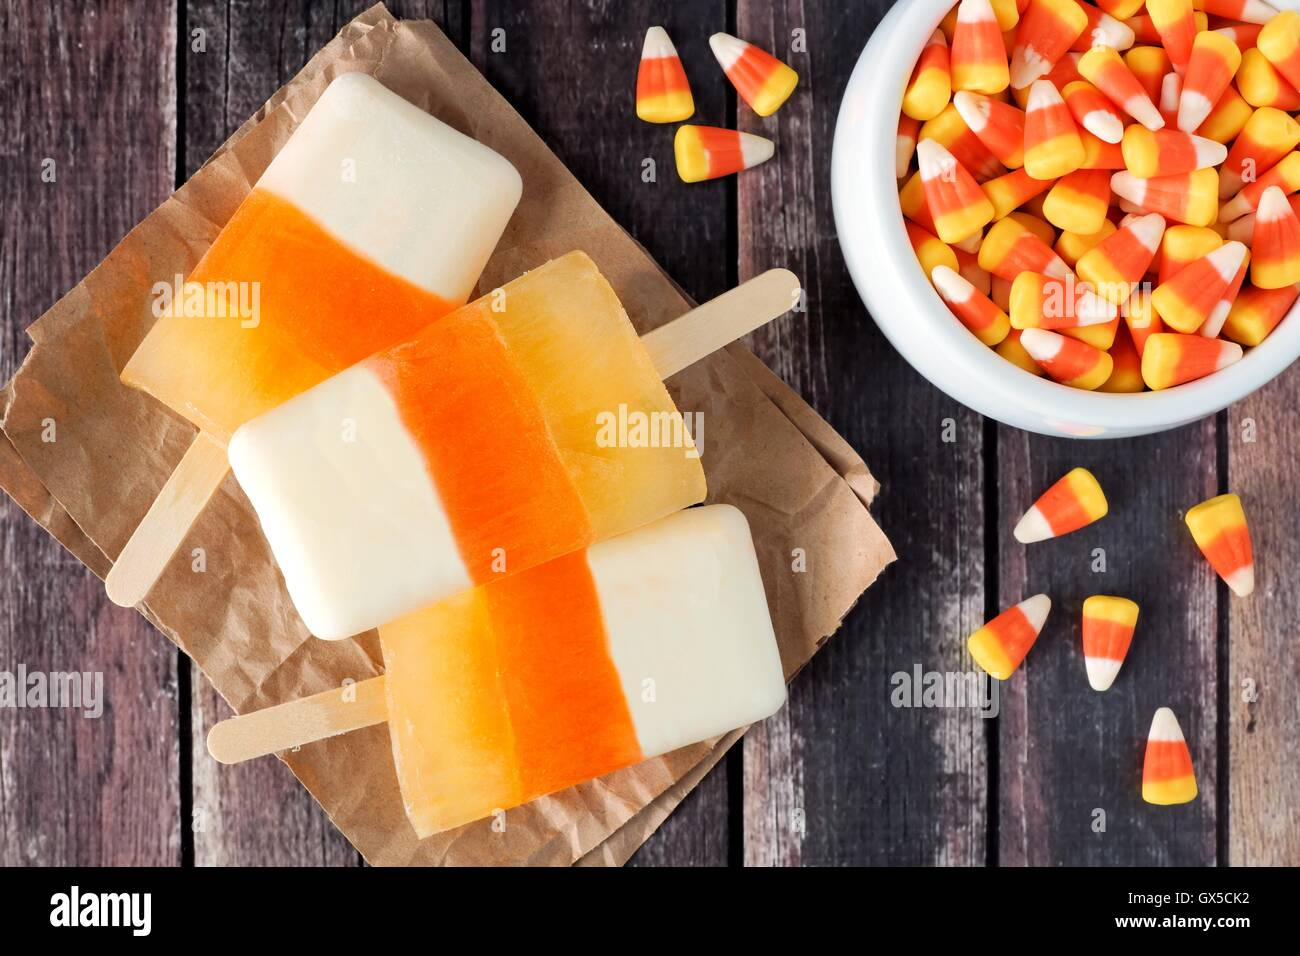 Halloween candy corn popsicles downward view on rustic wood background with bowl of candy - Stock Image